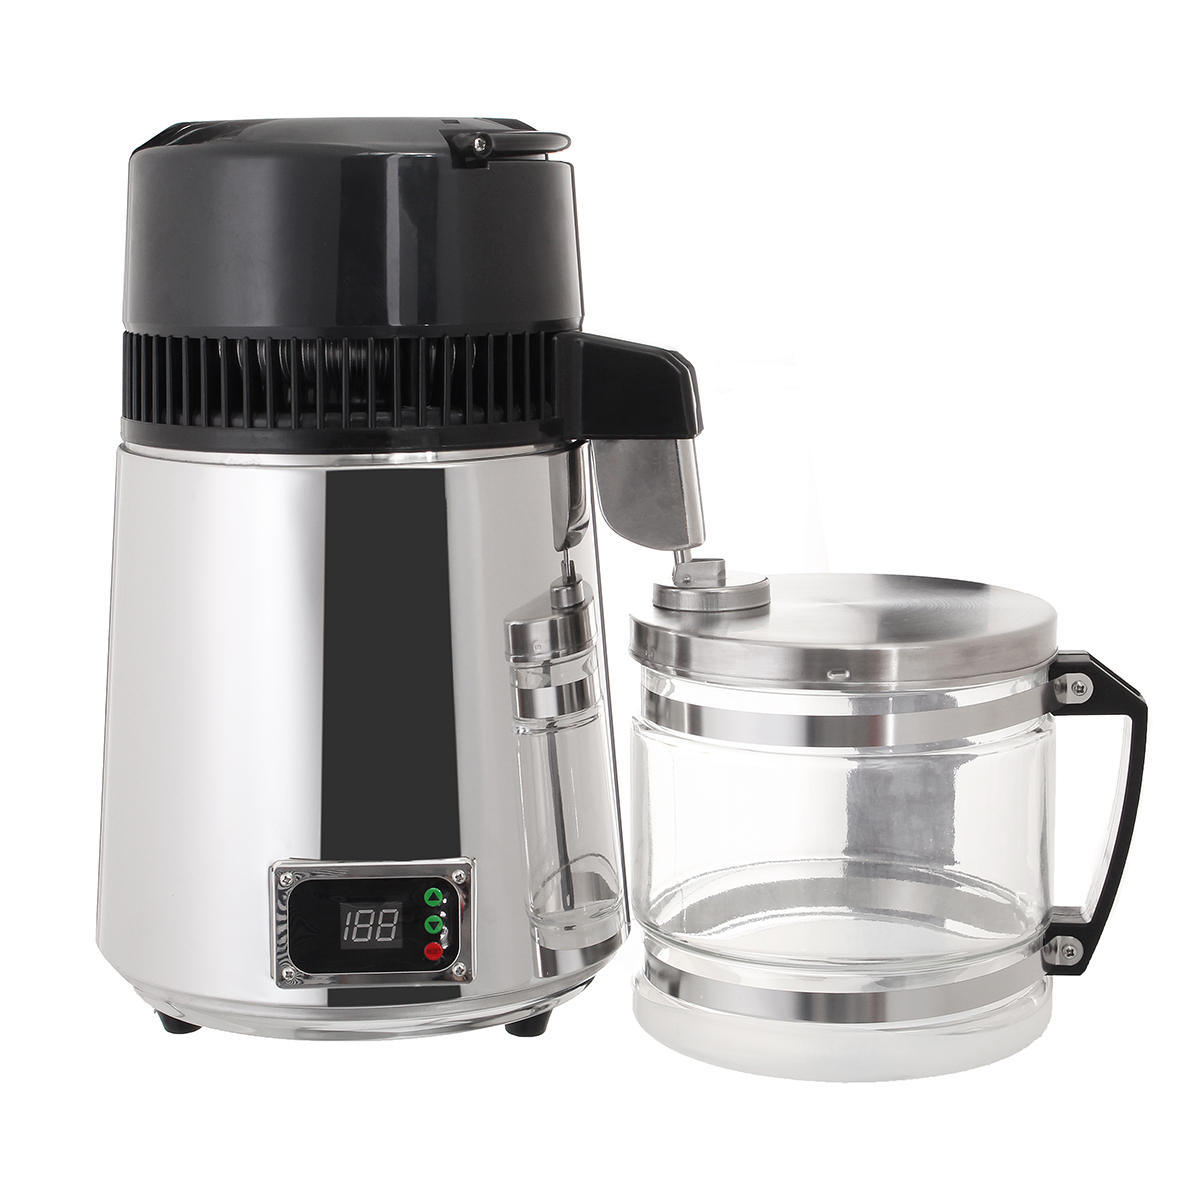 750W 4L Stainless Steel Pure Water Distiller 220V Purifier Filter LED Display Distilled Bottle